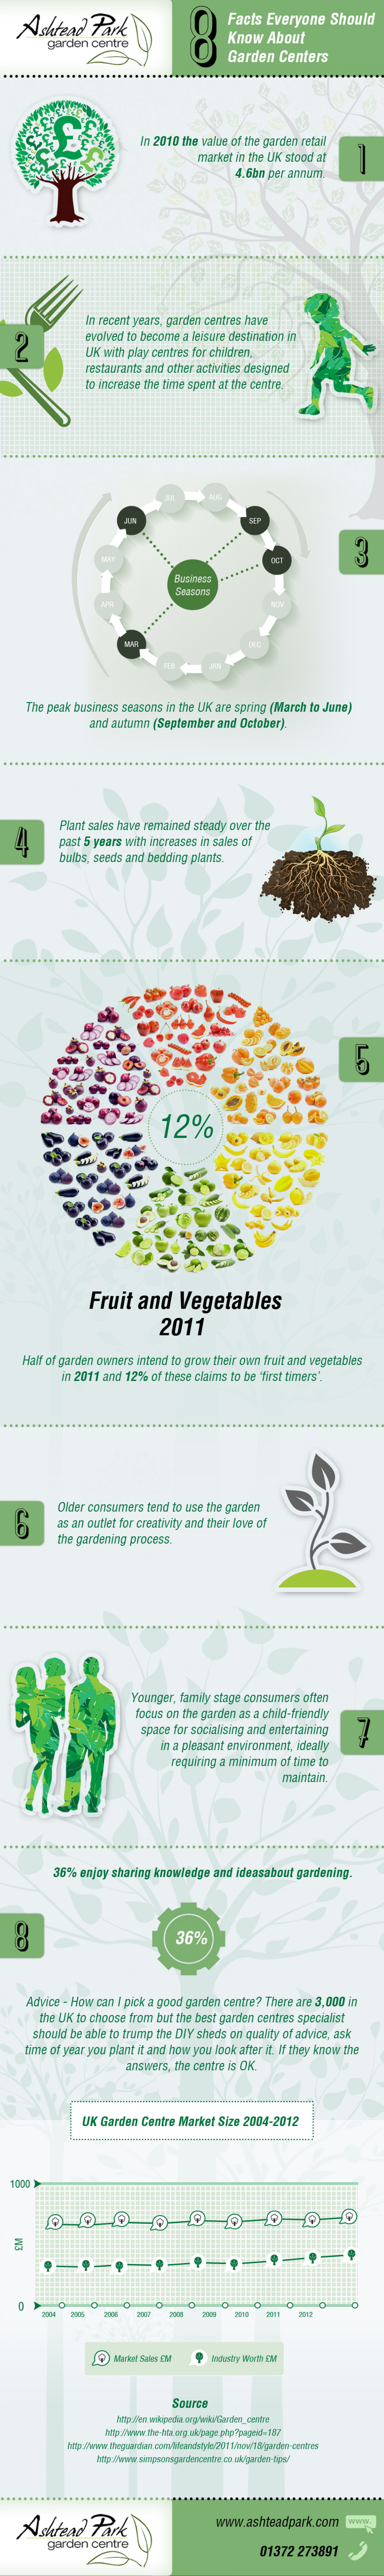 8 Facts Everyone Should Know About Garden Centres Infographic